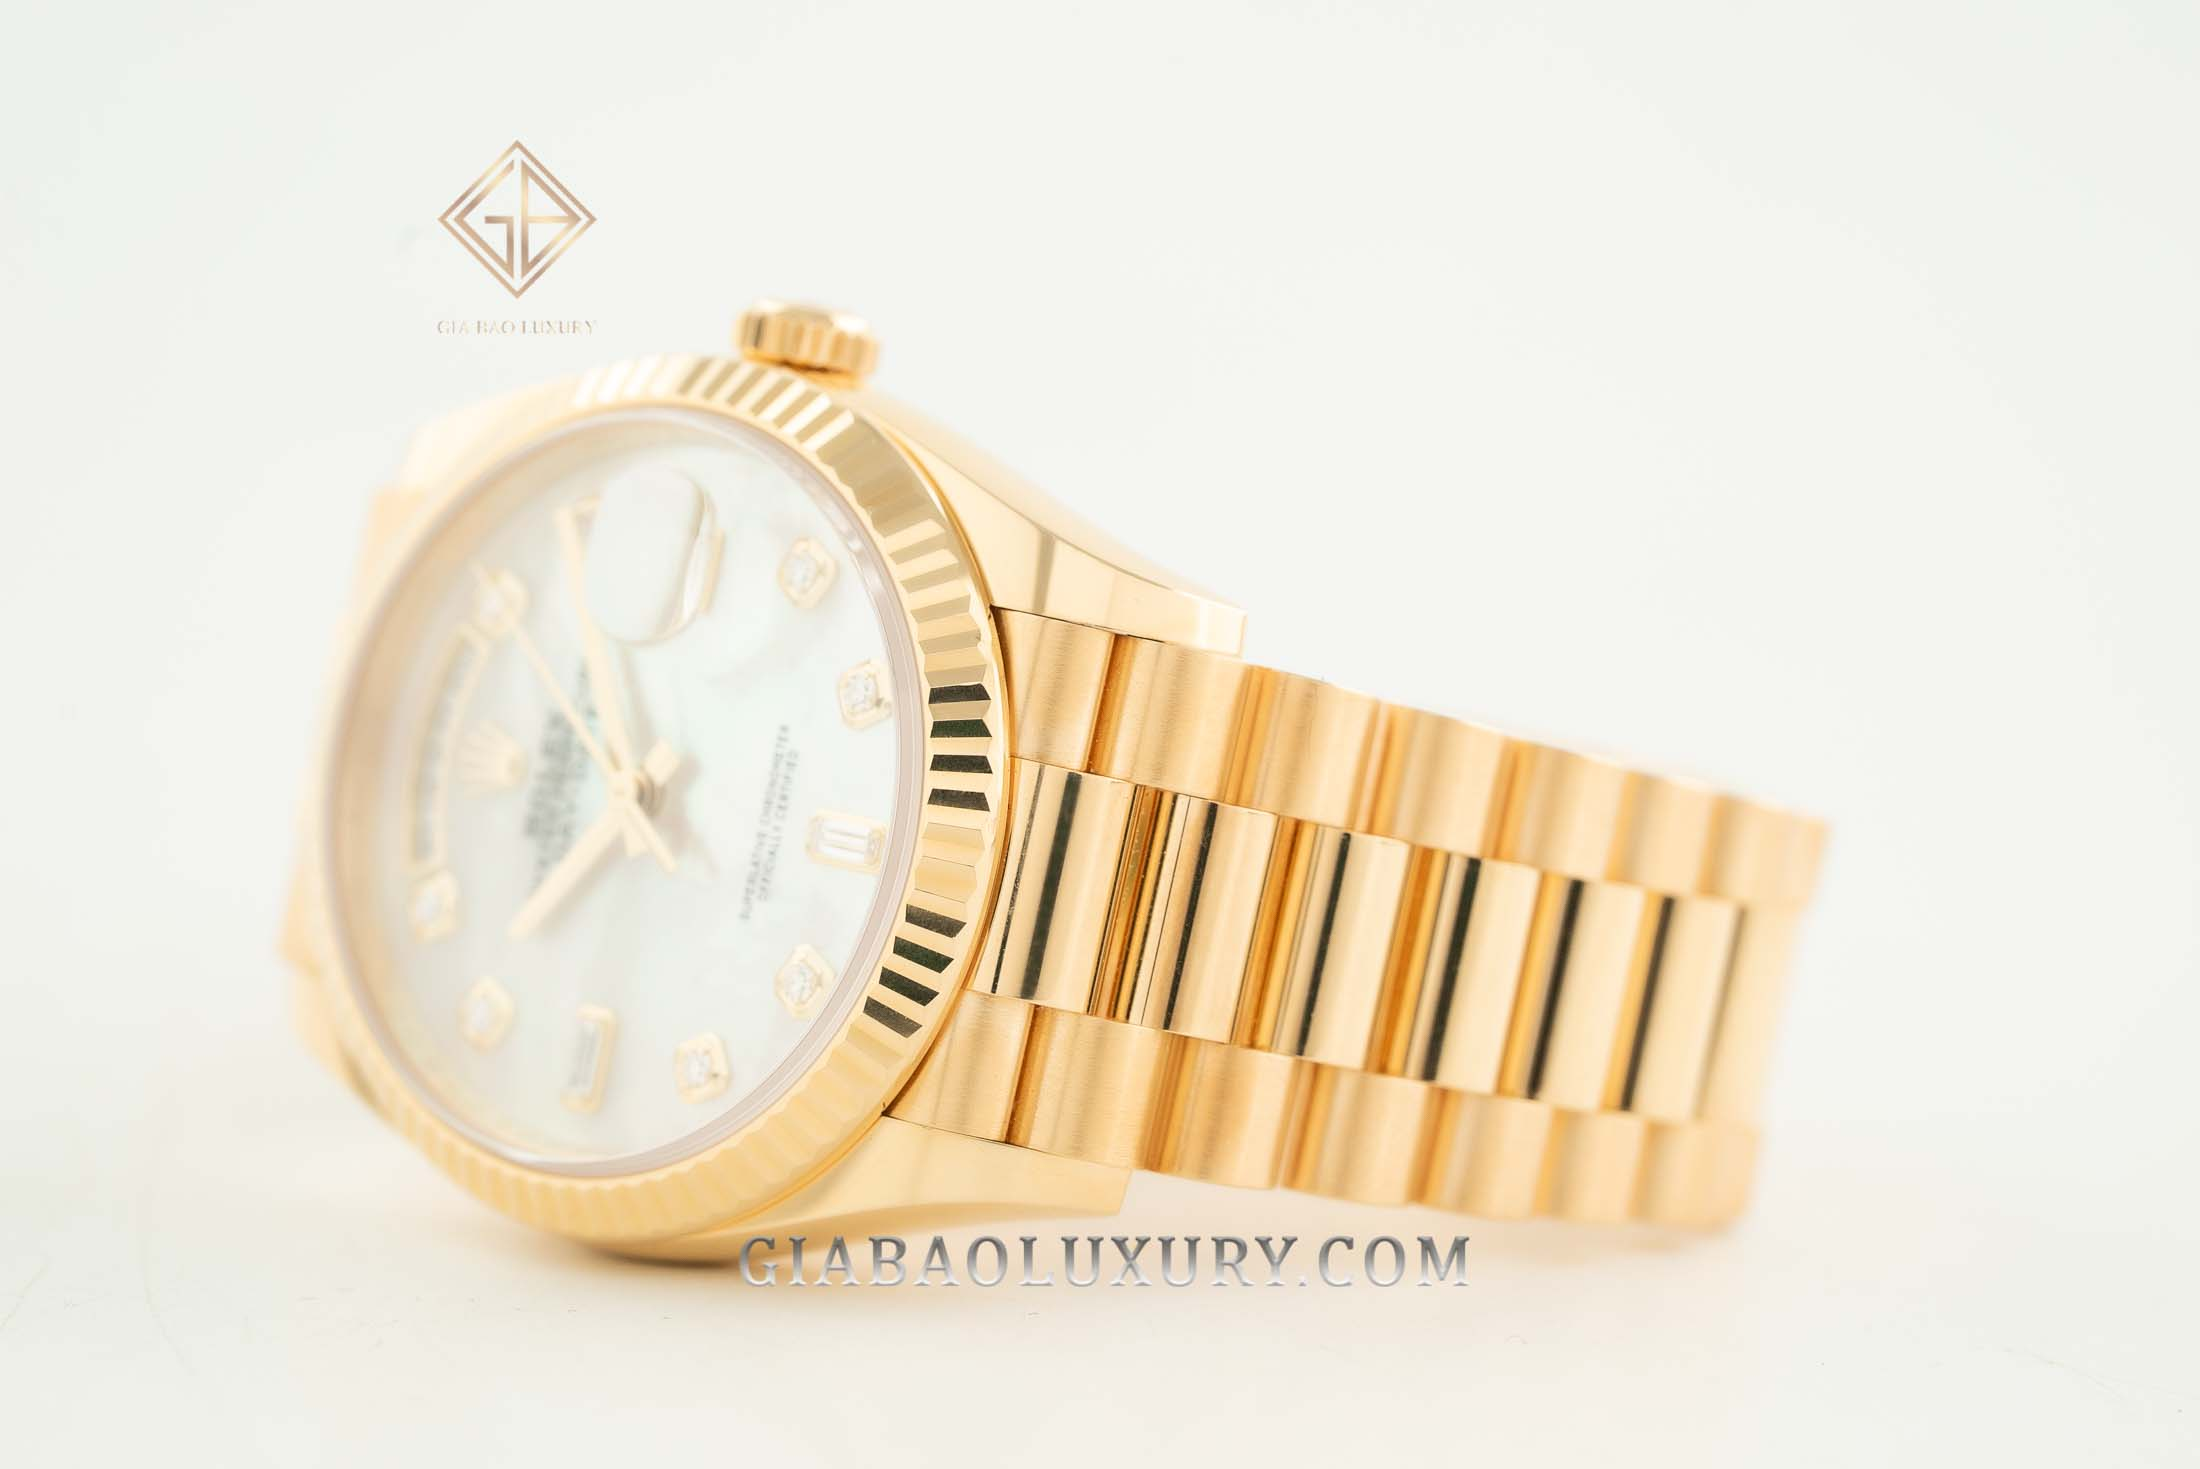 Đồng Hồ Rolex Day-Date 36 128238 Mặt Số Vỏ Trai Trắng